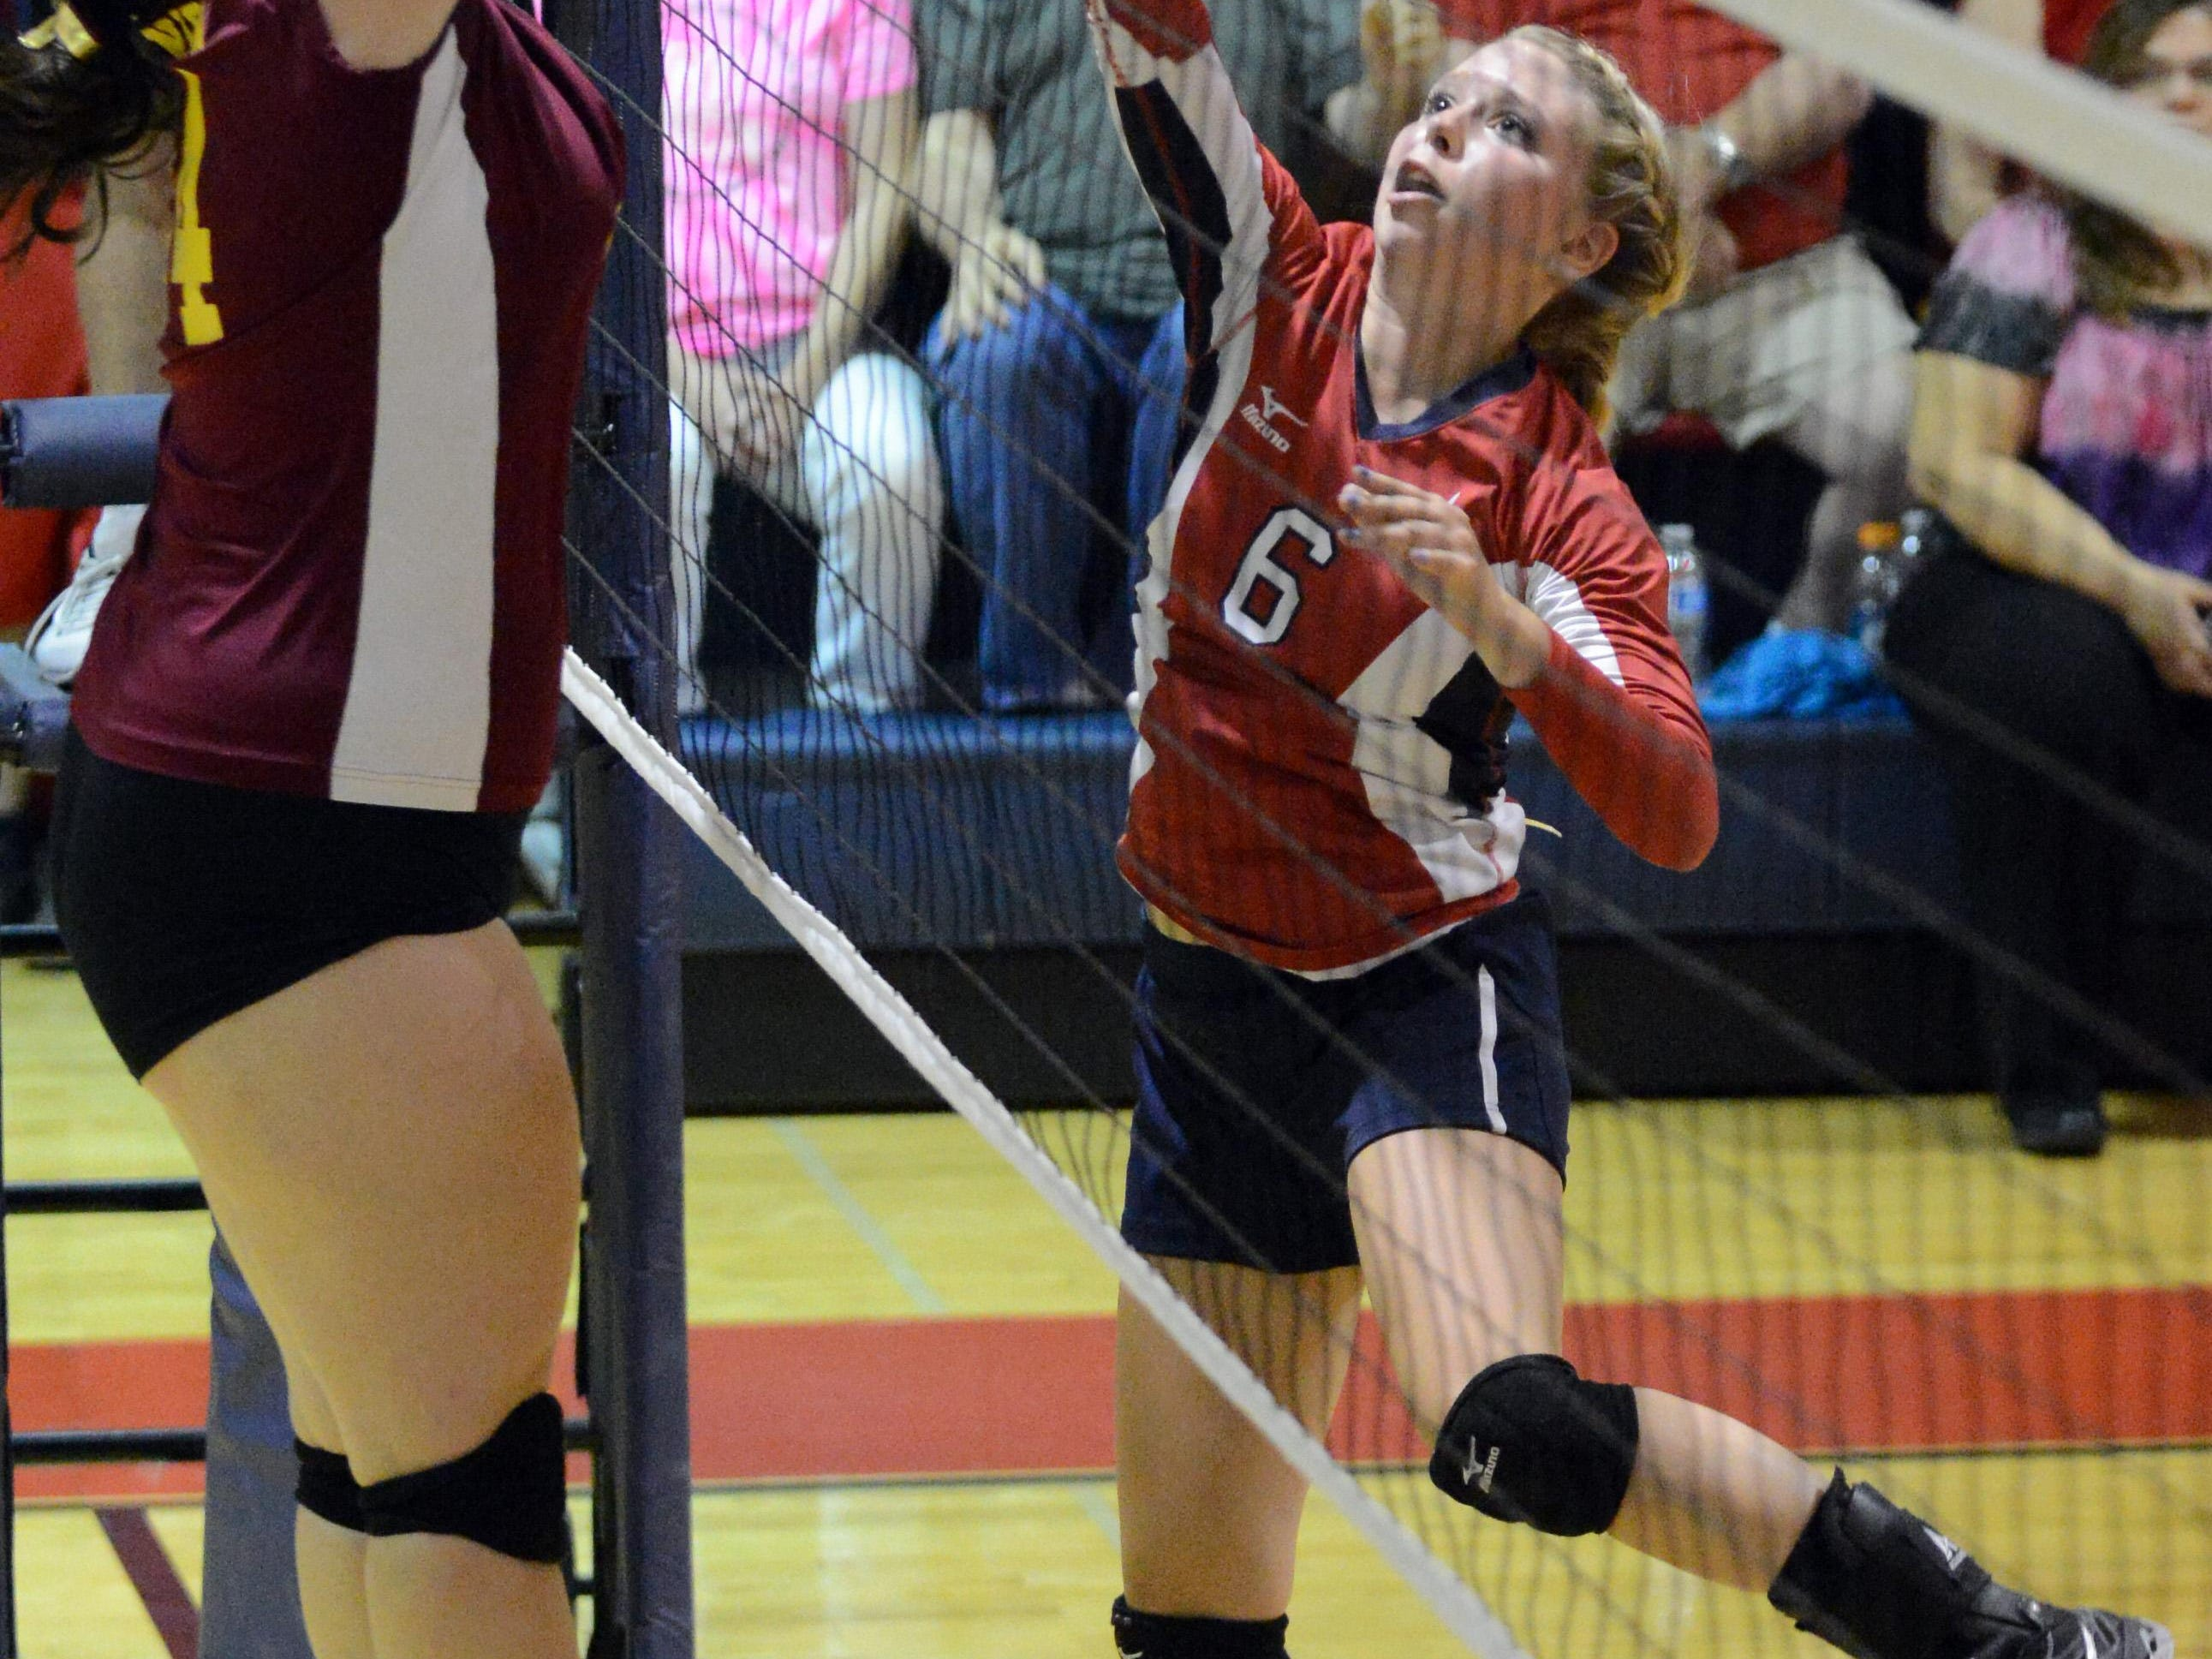 Fairfield Christian's Sydney Tucker tries to tip the ball over the net as Berne Union's Lauren Zody blocks Thursday at Fairfield Christian Academy in Lancaster. The Rockets won the match three games to two.